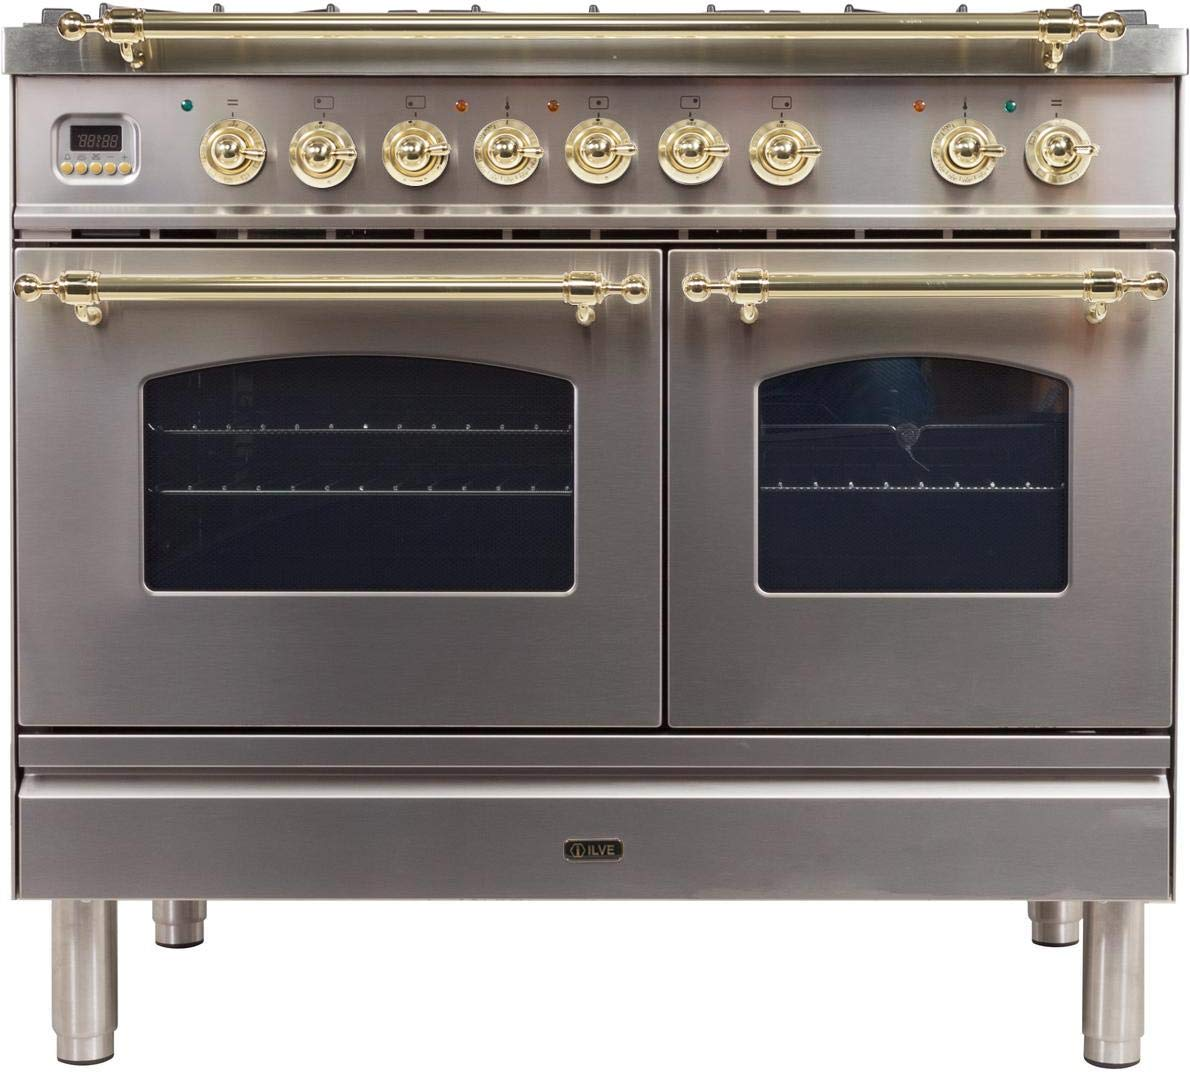 Ilve UPDN100FDMPILP Nostalgie Series 40 Inch Dual Fuel Convection Freestanding Range, 5 Sealed Brass Burners, 4 cu.ft. Total Oven Capacity in Stainless Steel, Brass Trim (Liquid Propane)